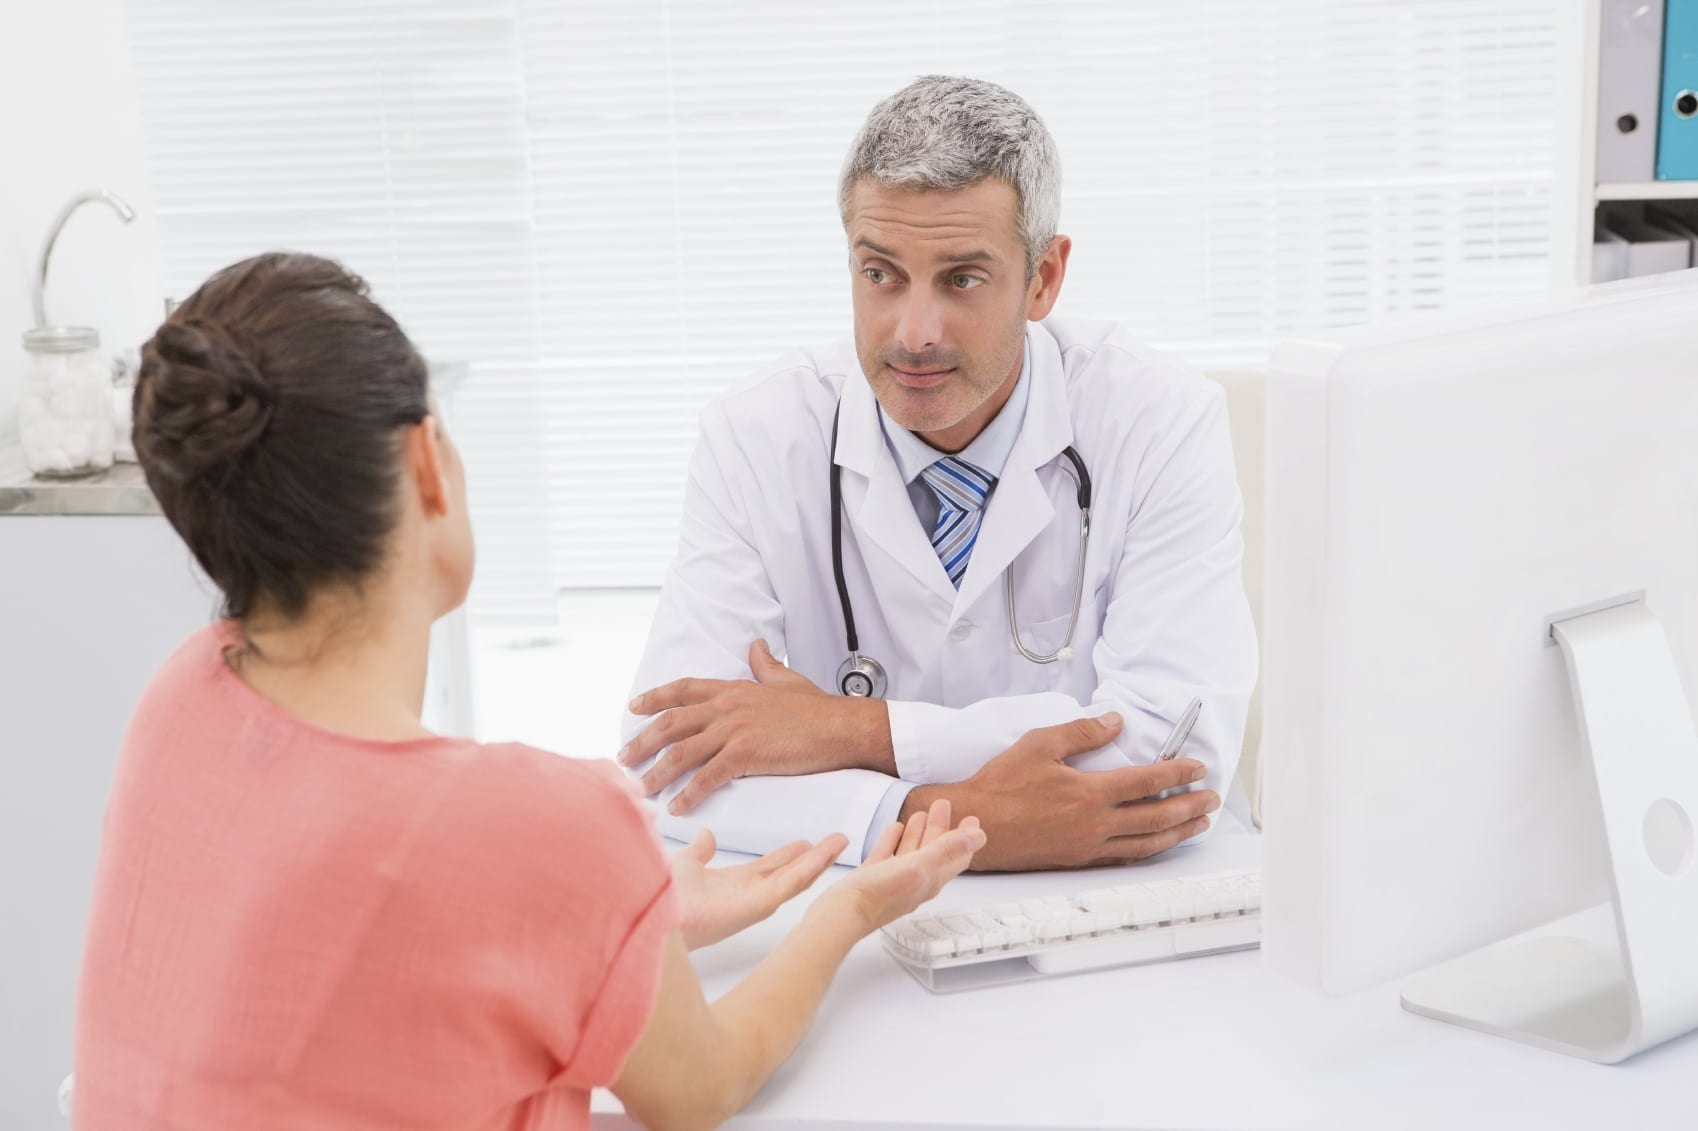 Doctor Meeting With A Patient In His Office Stock Photo